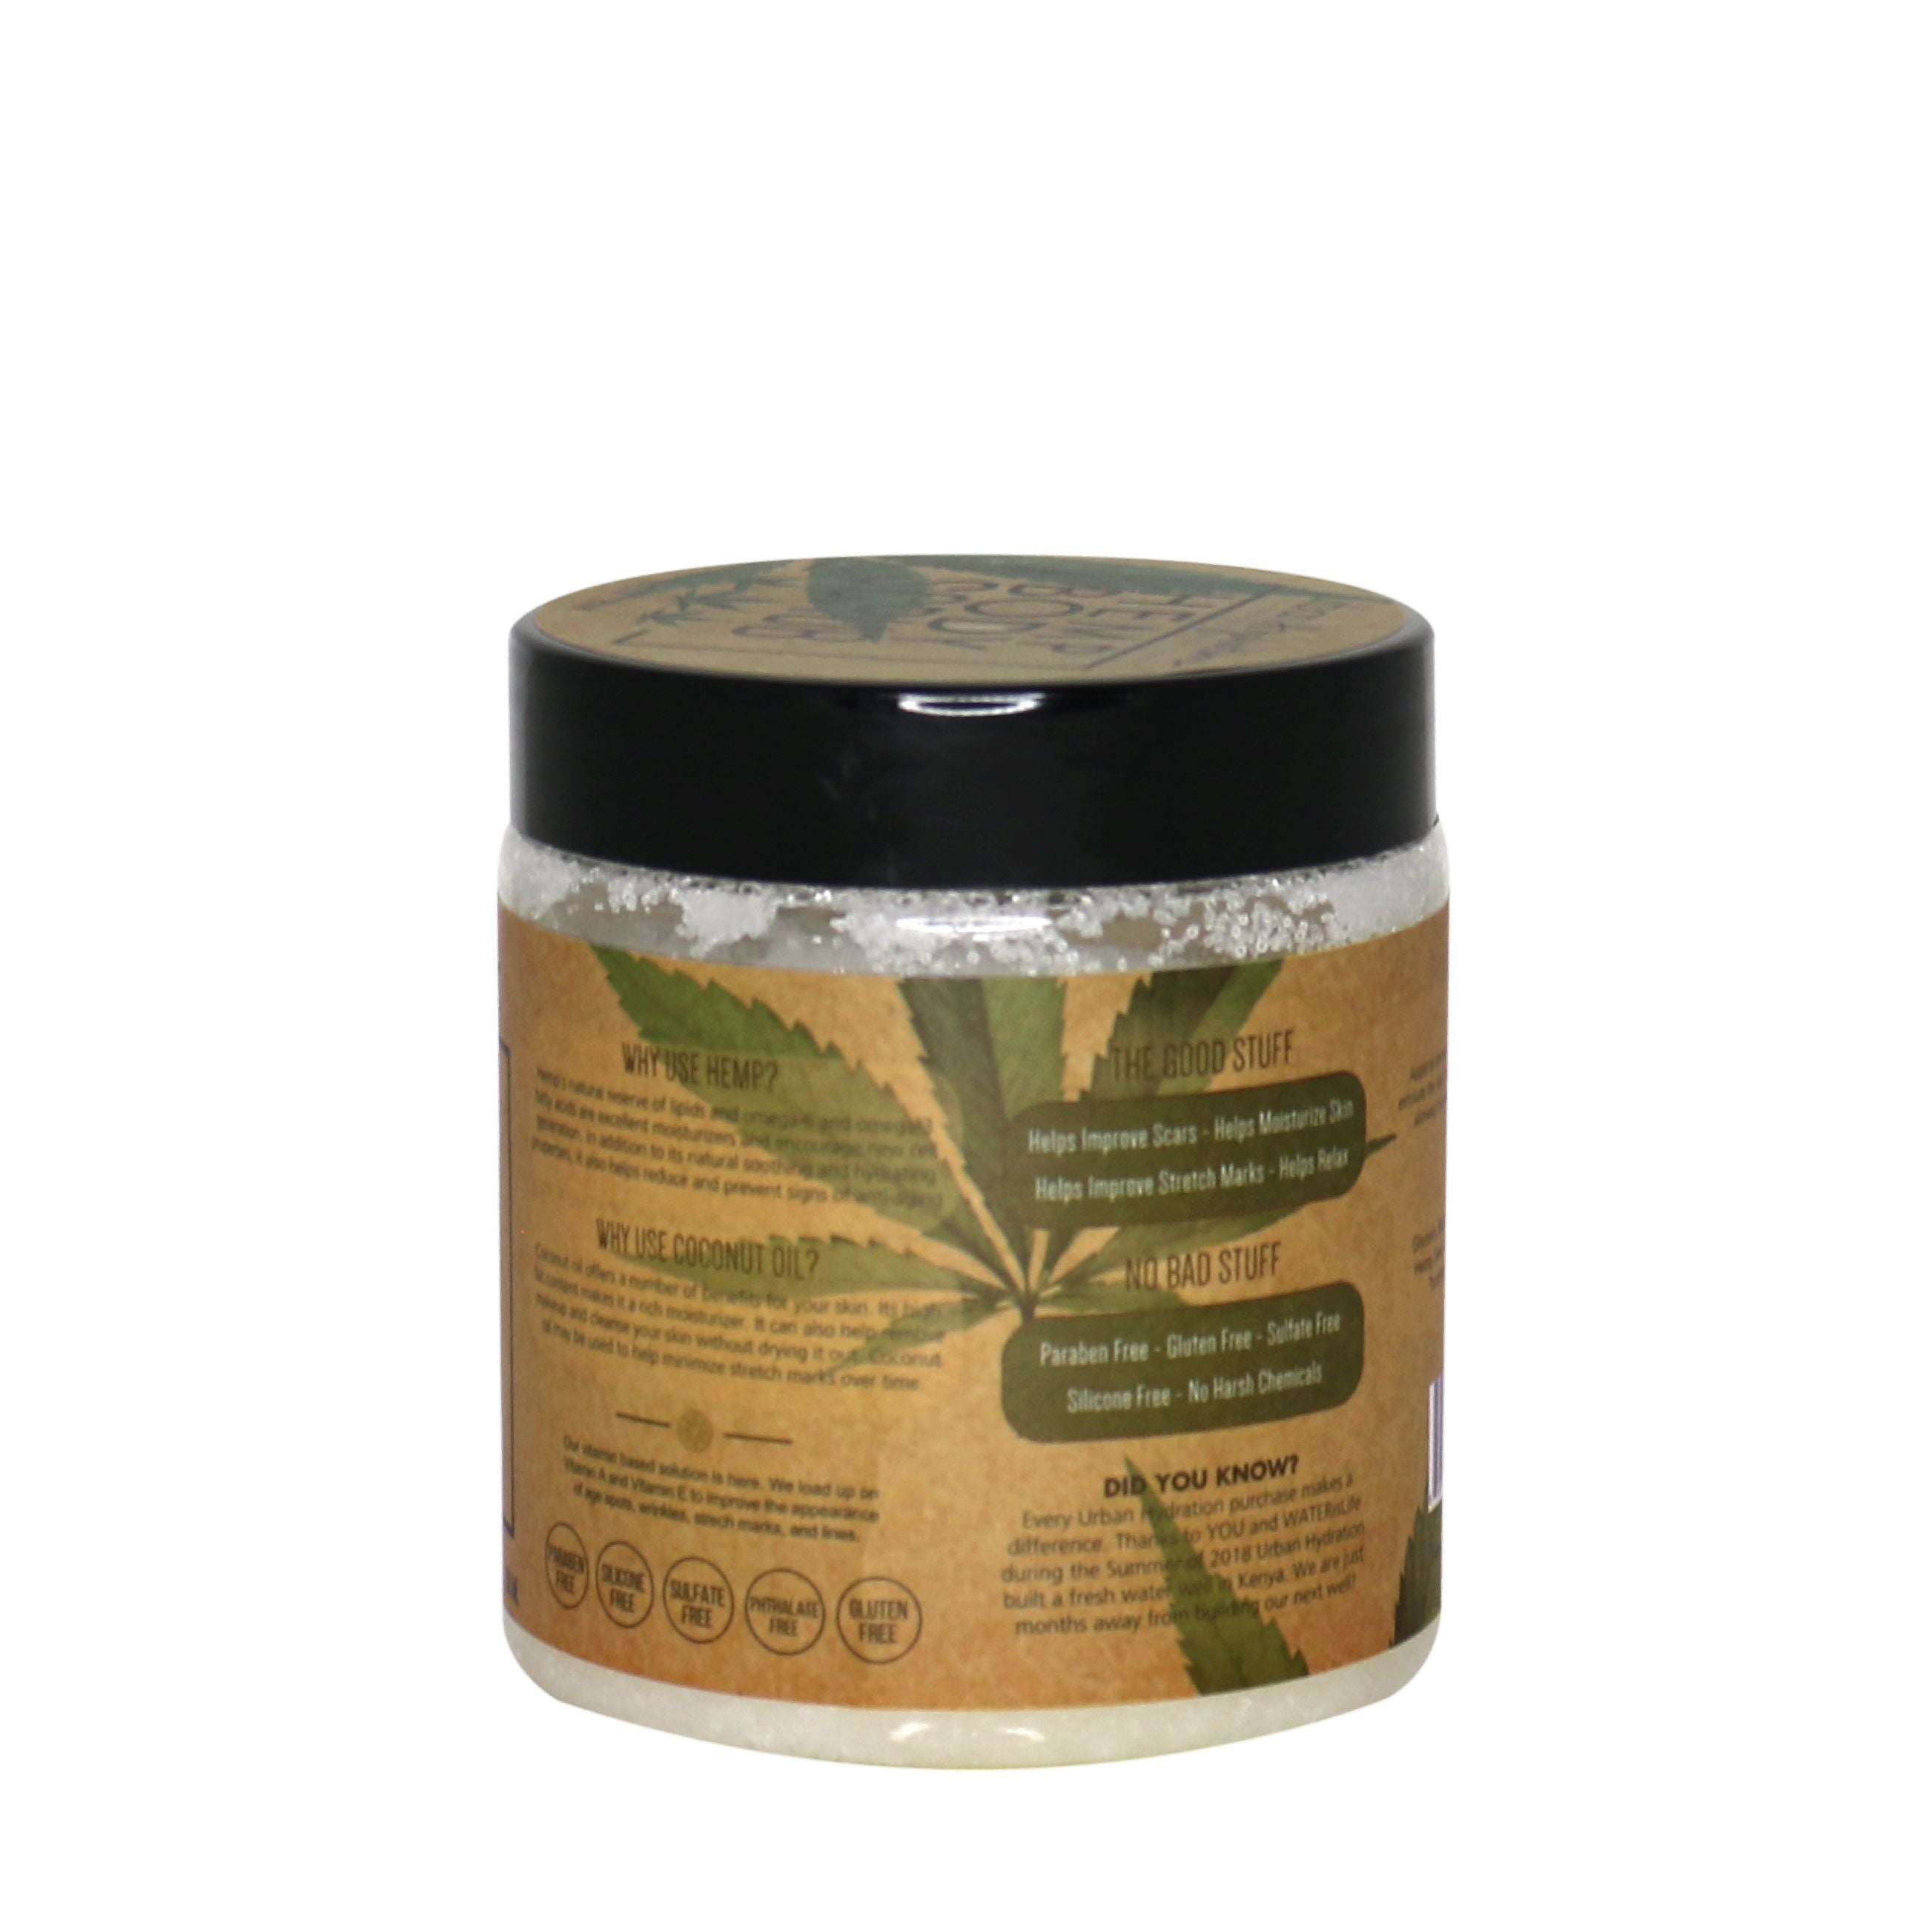 Hemp Body Scrub